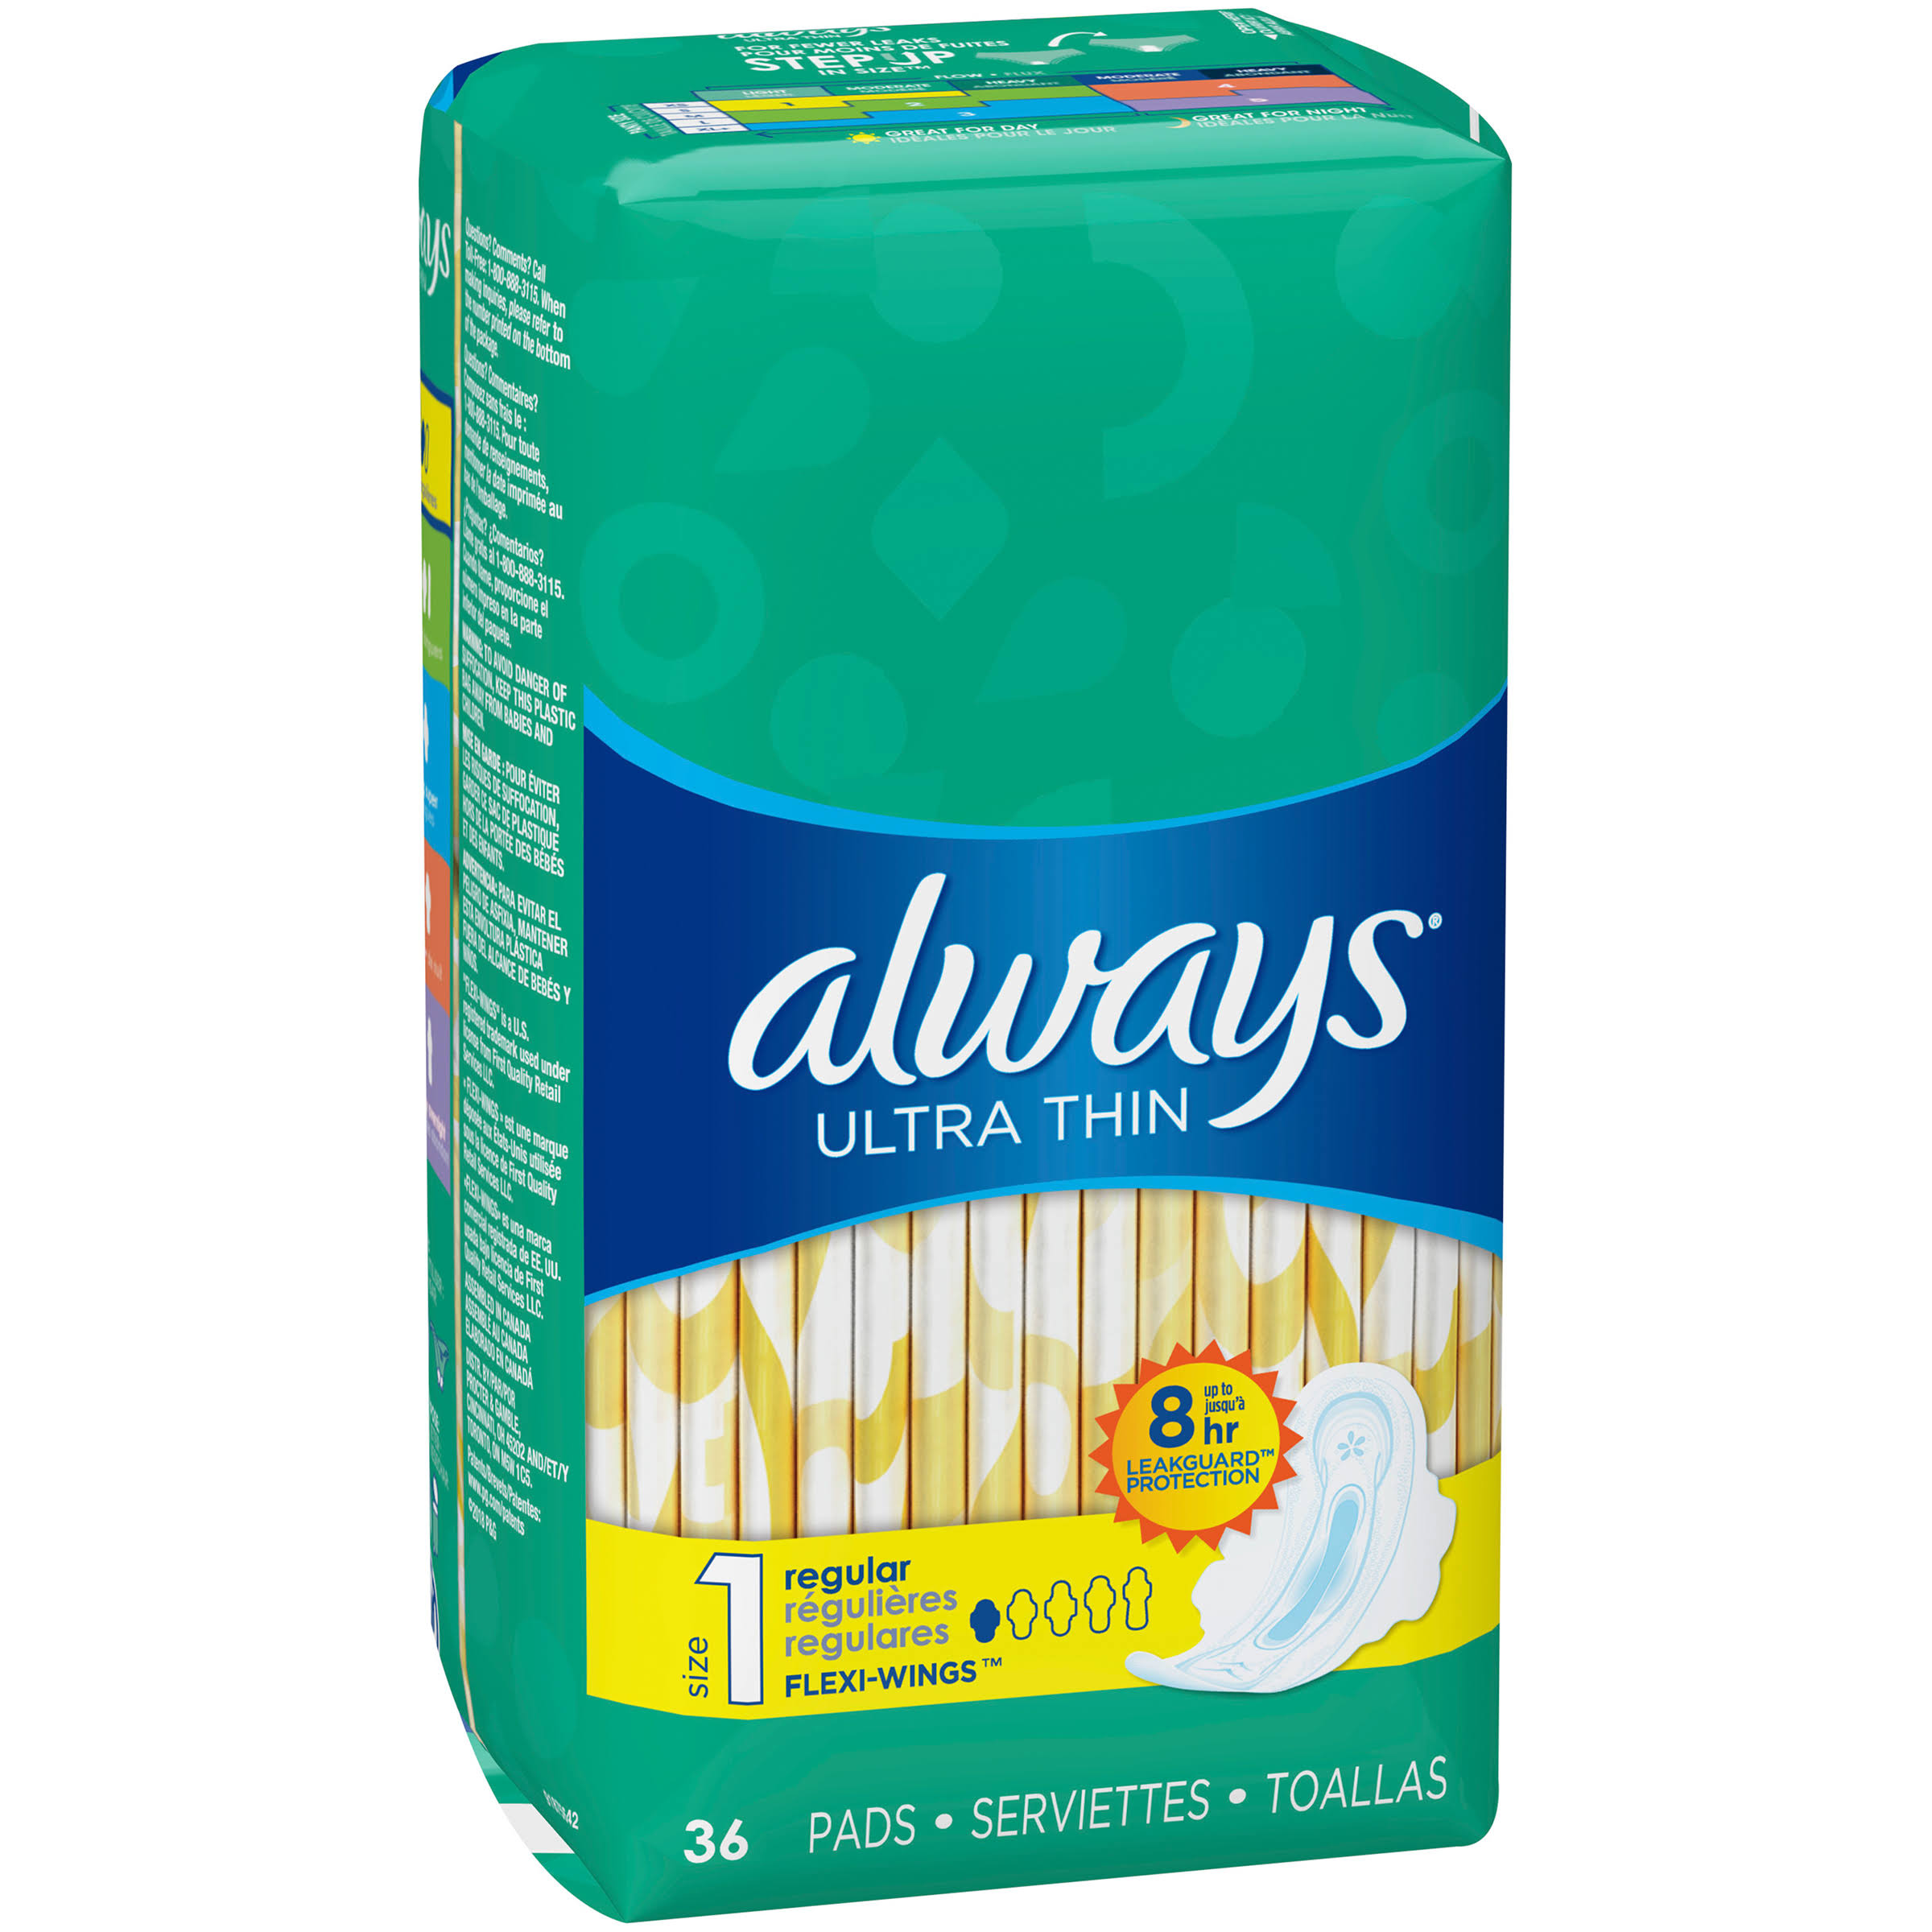 Always Ultra Thin Regular Pads - 36 ct